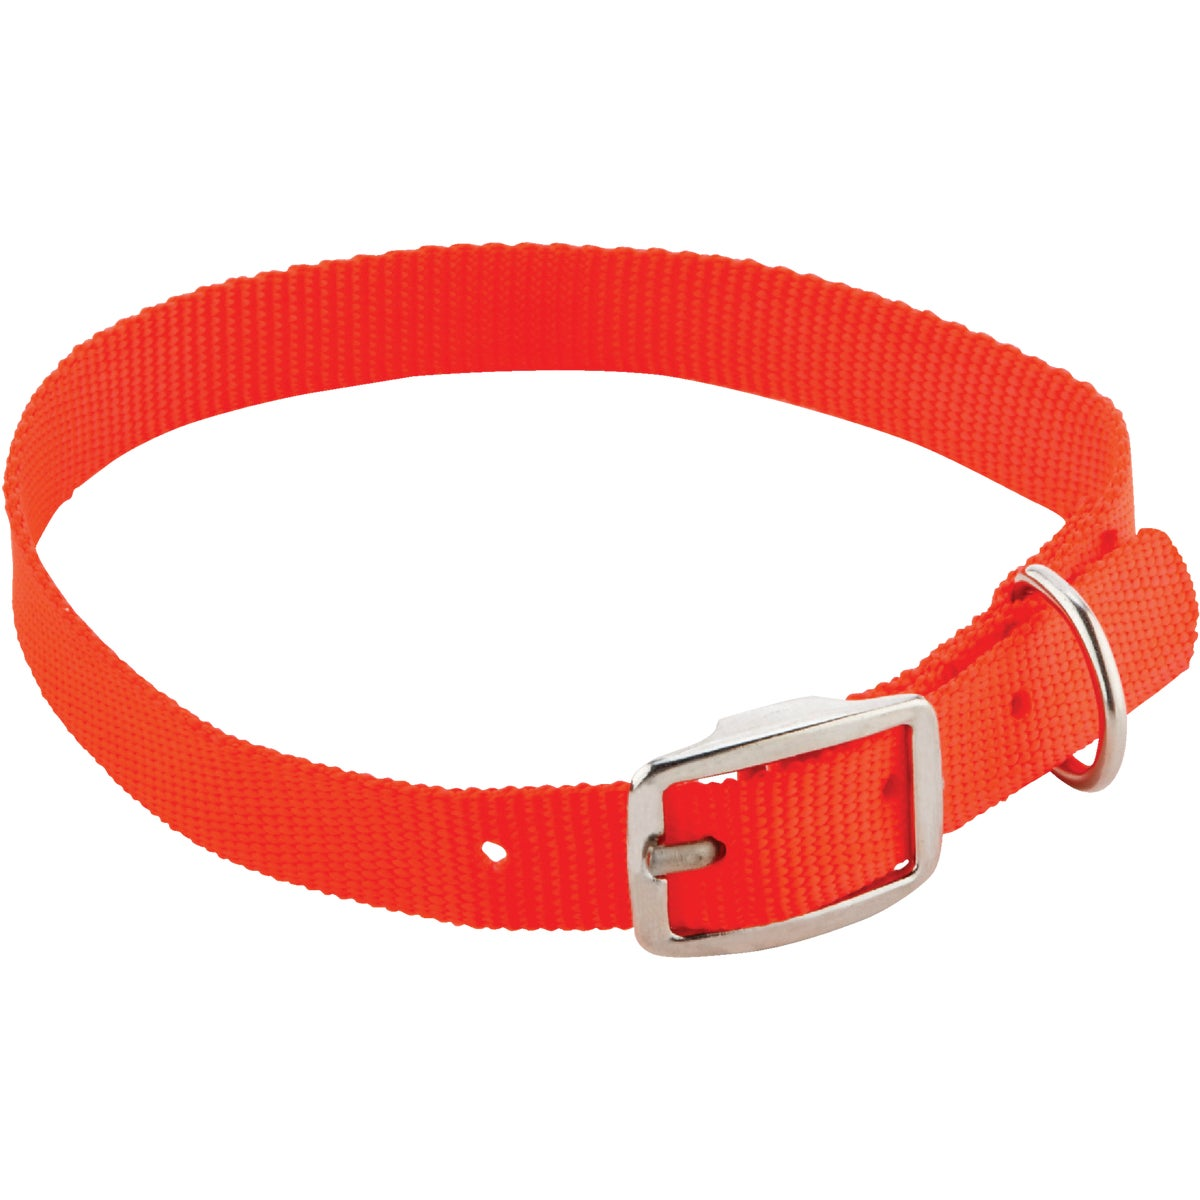 "24"" ORANGE NYLON COLLAR - 31424-0 by Westminster Pet"